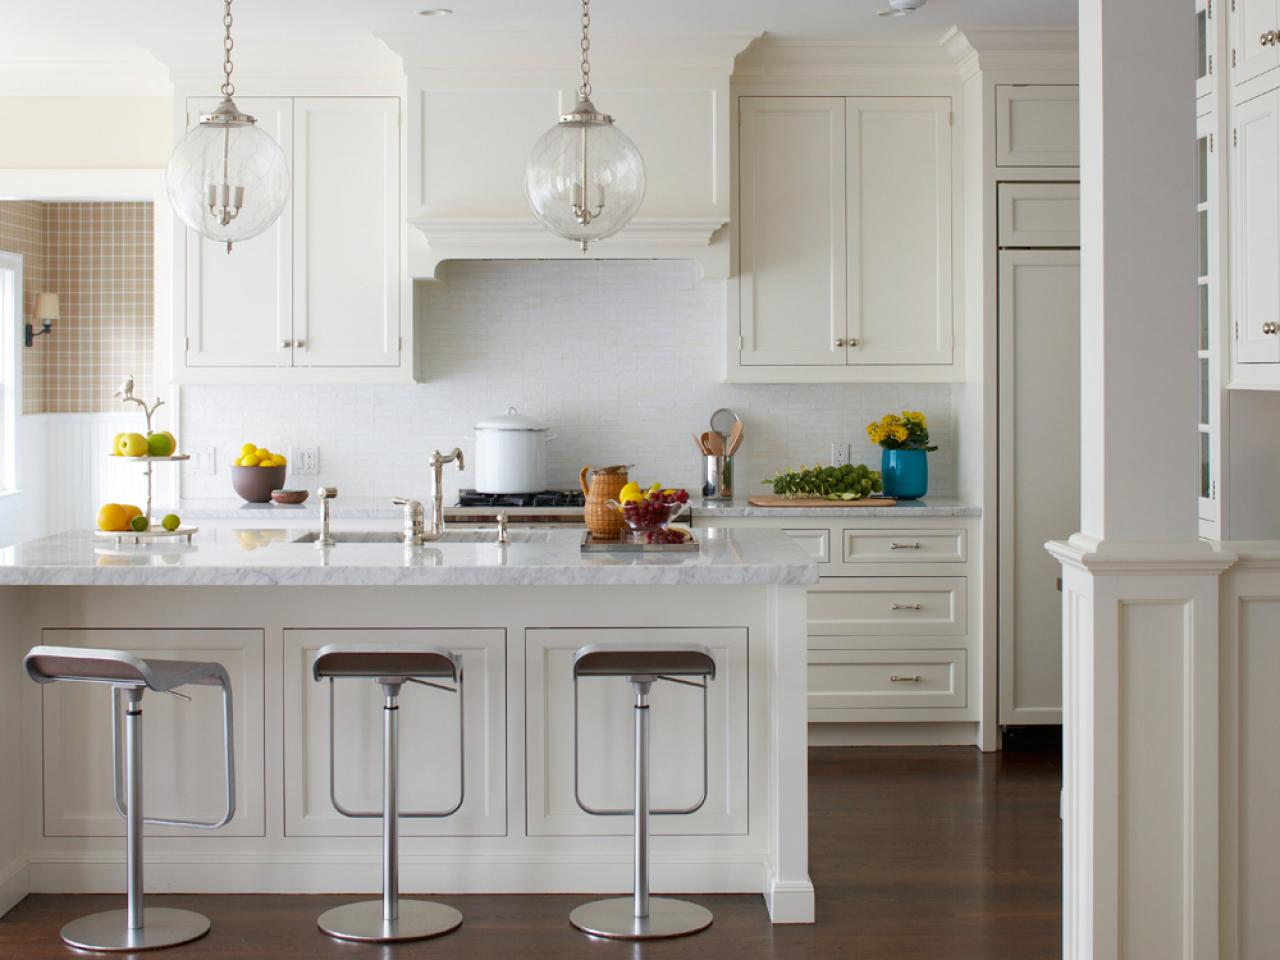 White Kitchen by oldhouseonline White With Pops Of Color Wonderful White Kitchens How To Decorate Them So Theyre Anything But Vanilla